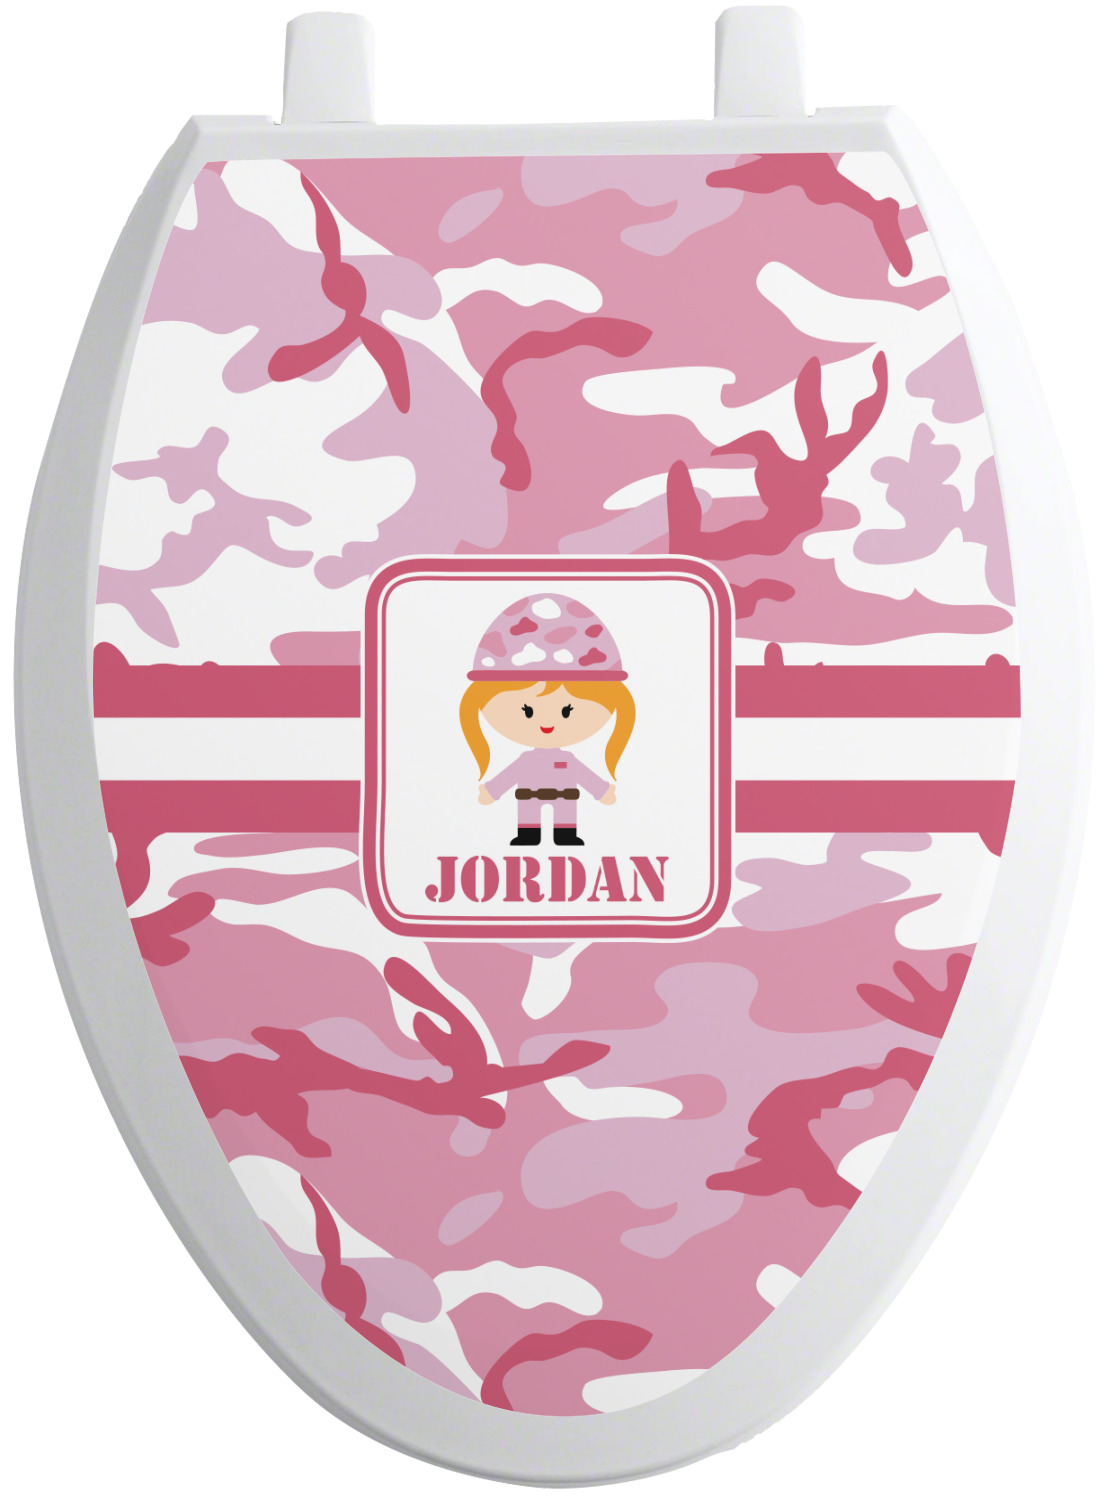 Pink Camo Toilet Seat Decal Elongated Personalized